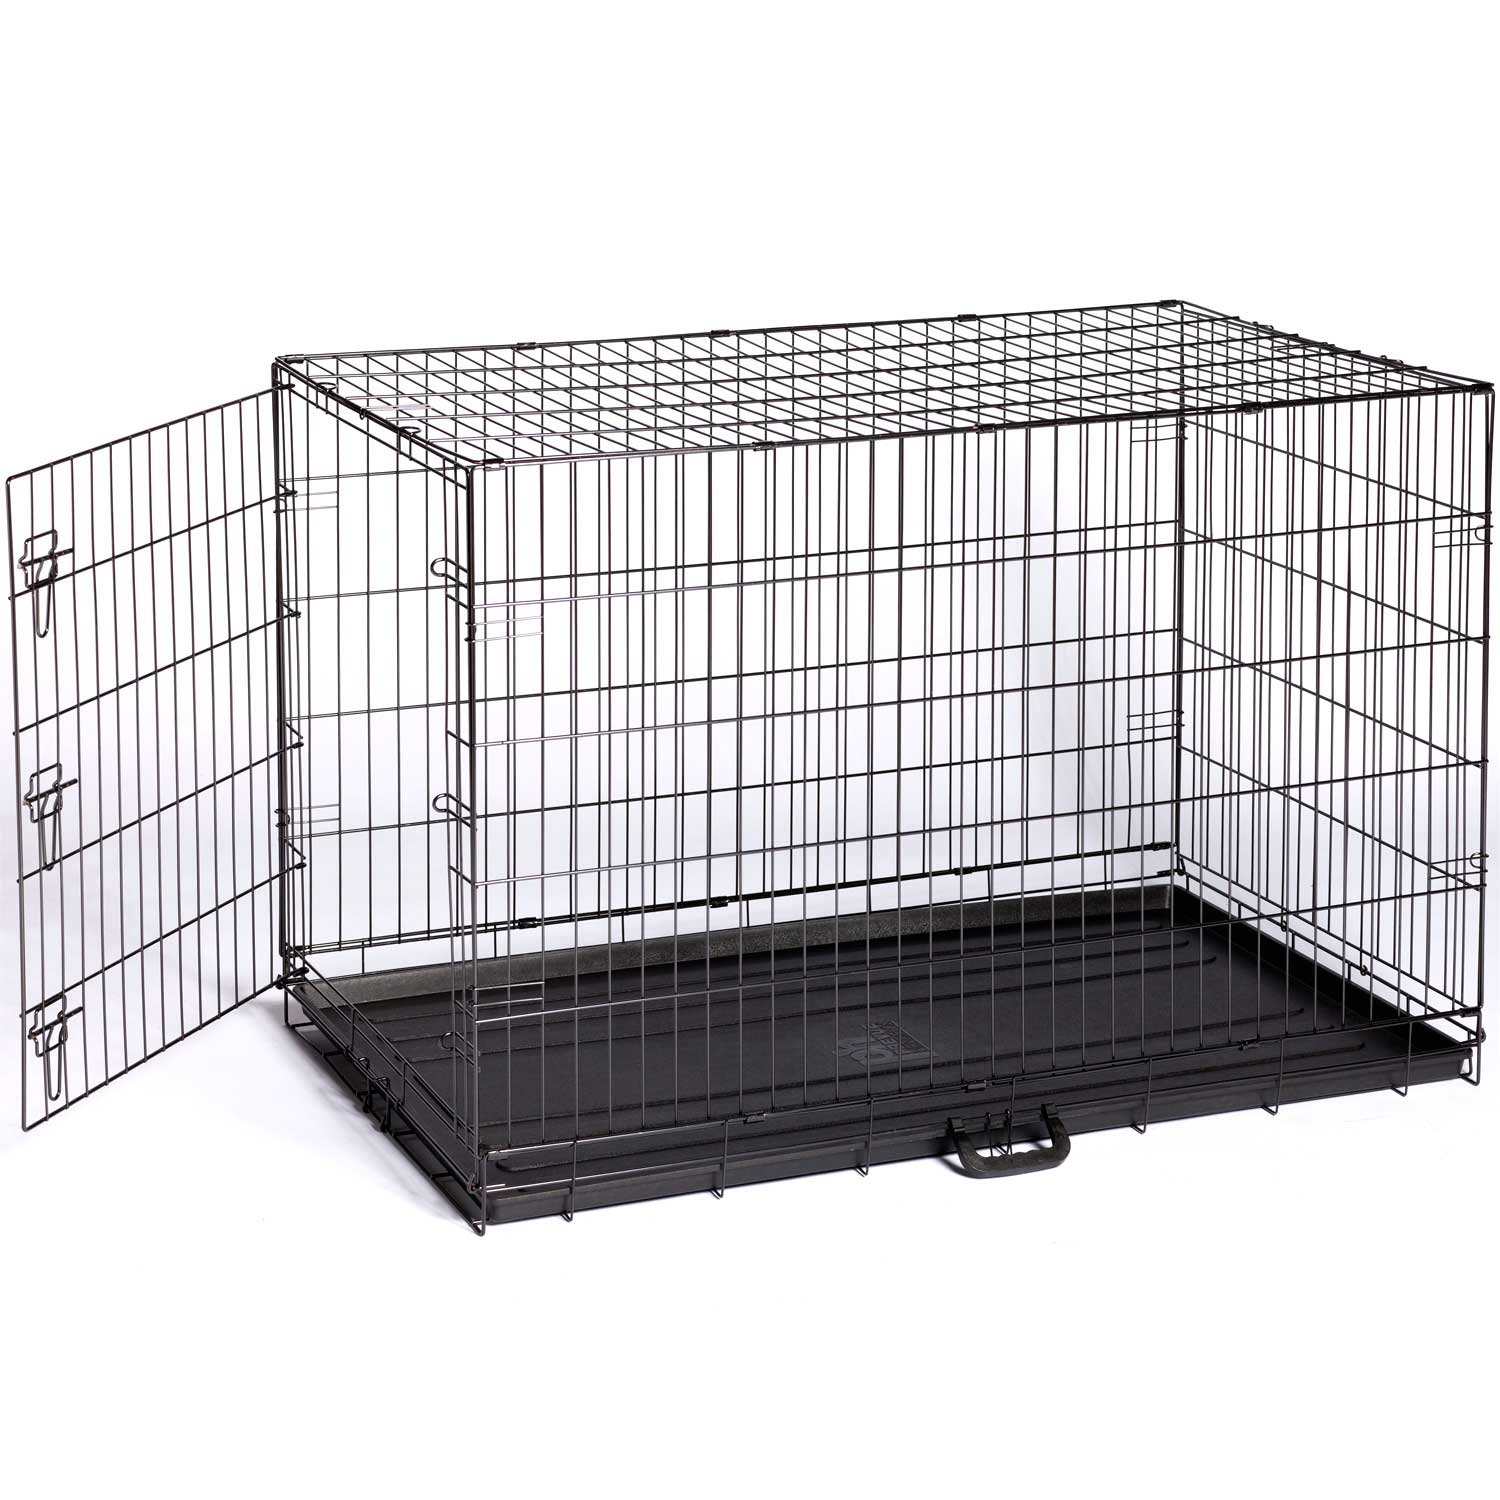 amazoncom home onthego single door dog crate e435 xlarge pet crates pet supplies - Precision Pet Products